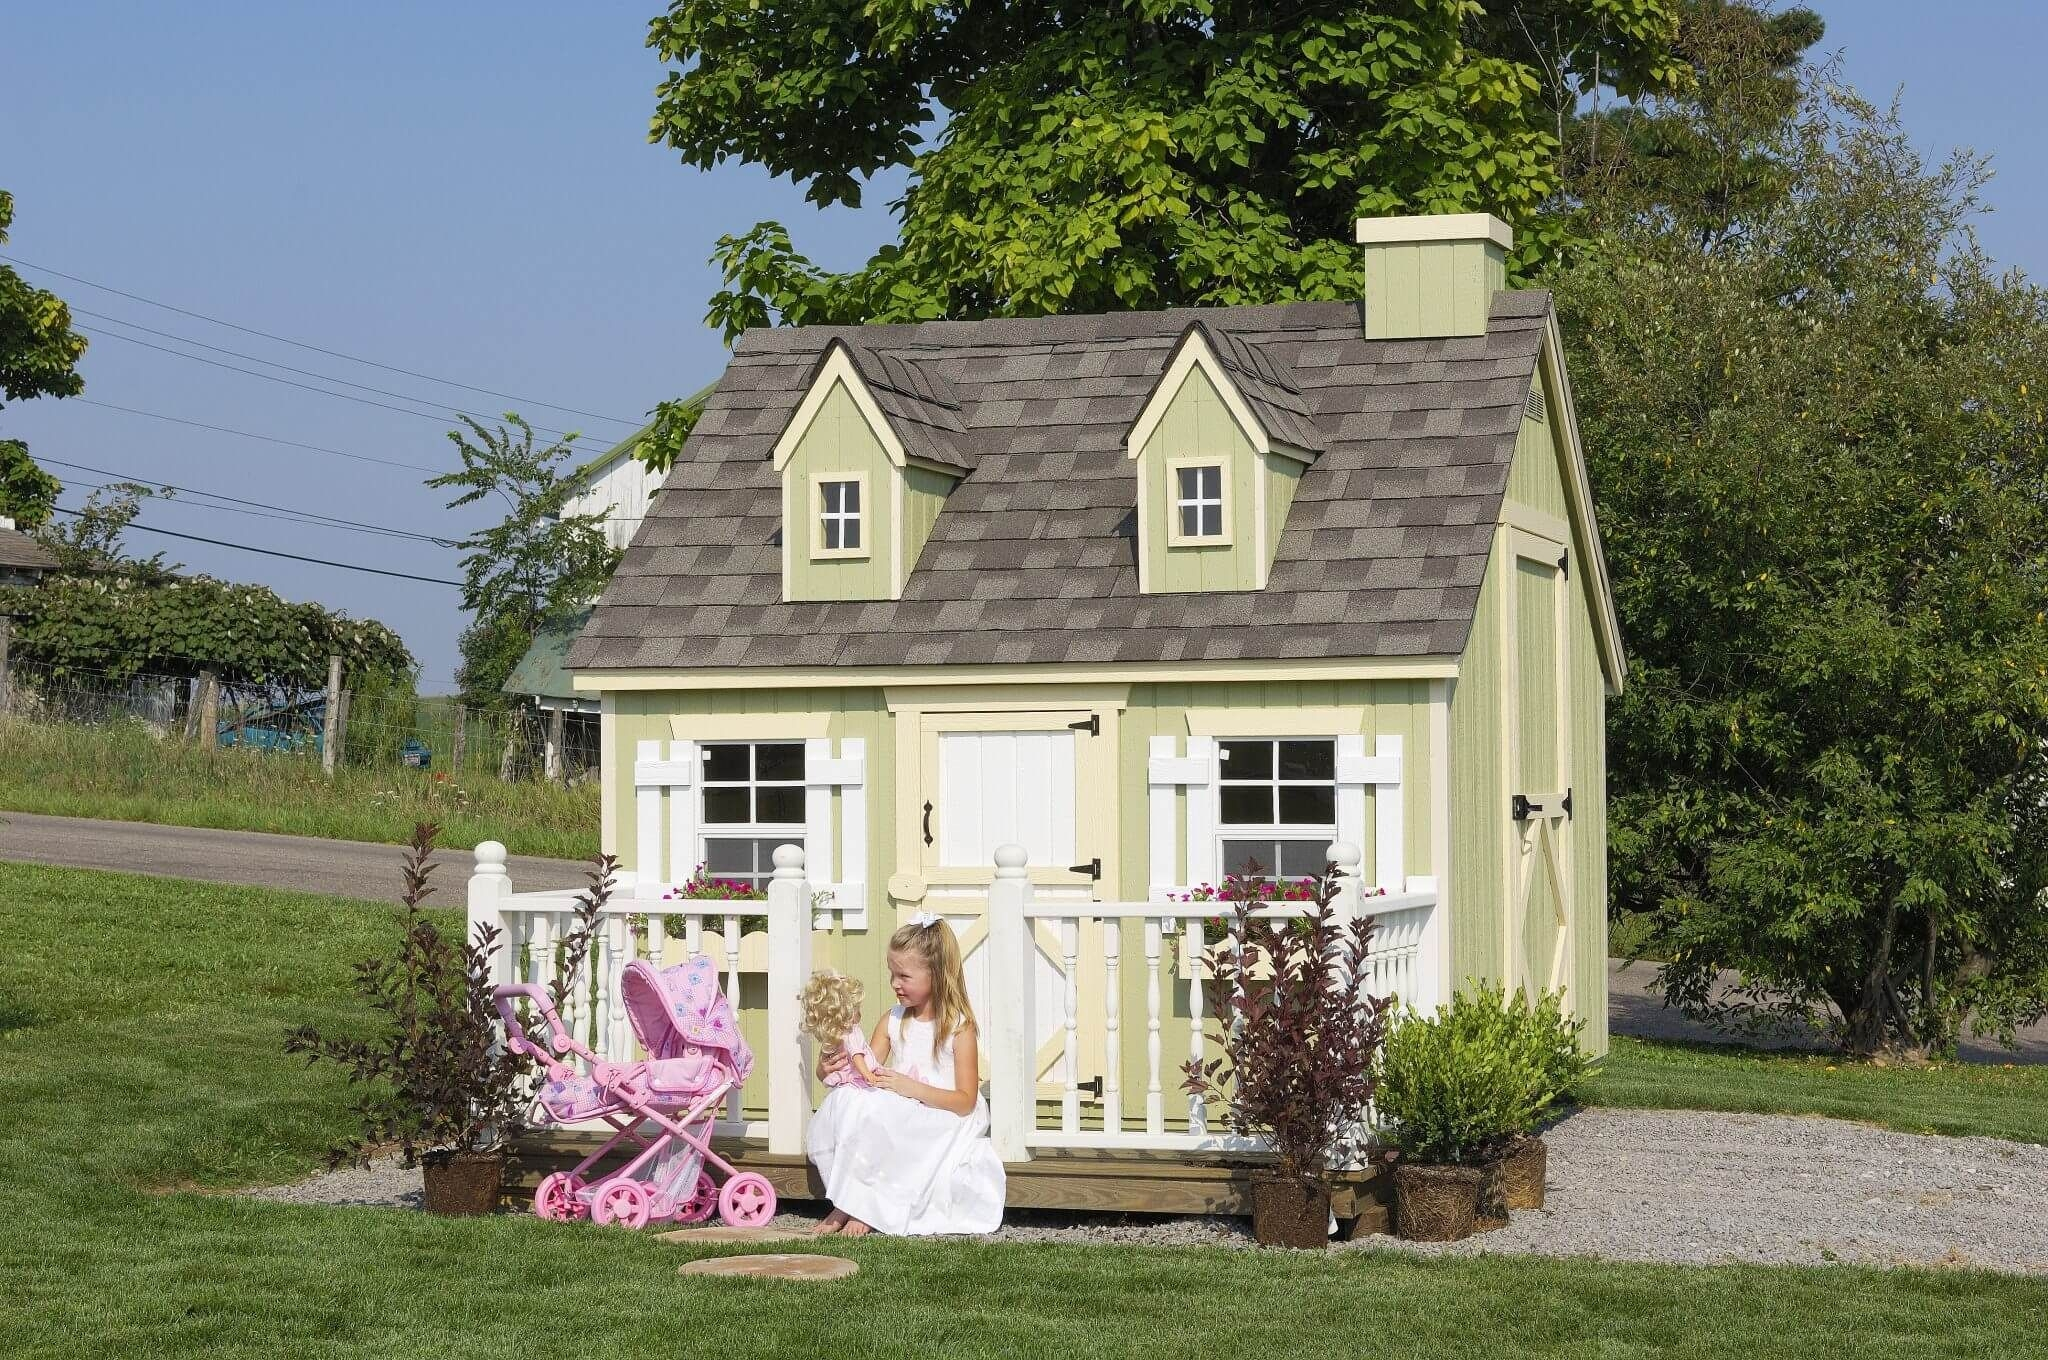 Kids Outdoor Playhouse Kit 8x8 Wooden Cape Cod Style Cottage